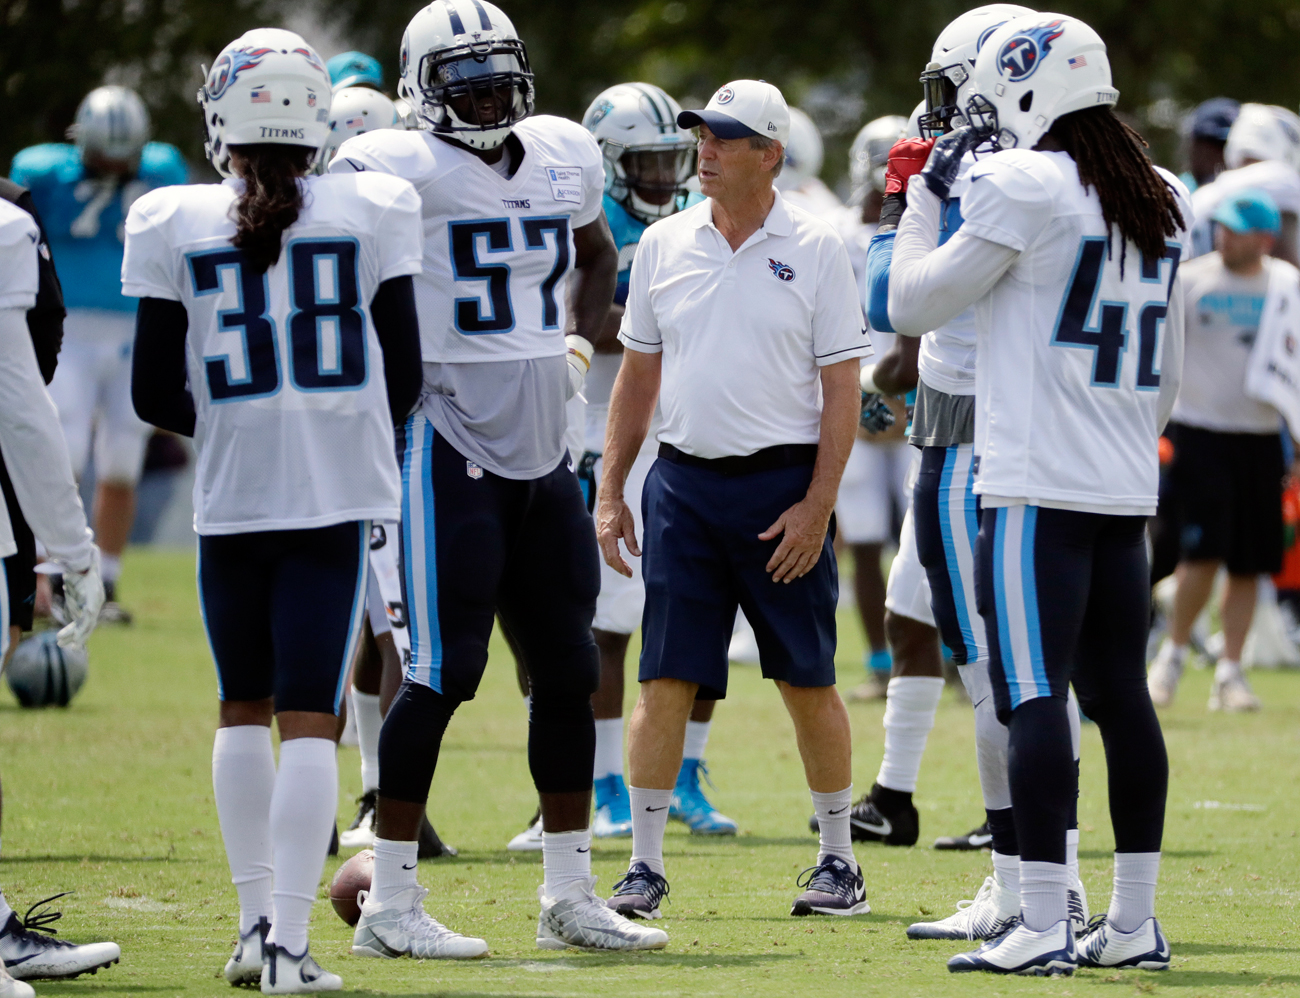 Following a 13-year playing career that ended in 1972, Dick LeBeau has coached in the NFL since 1973. The Titans are the sixth team he has worked for.